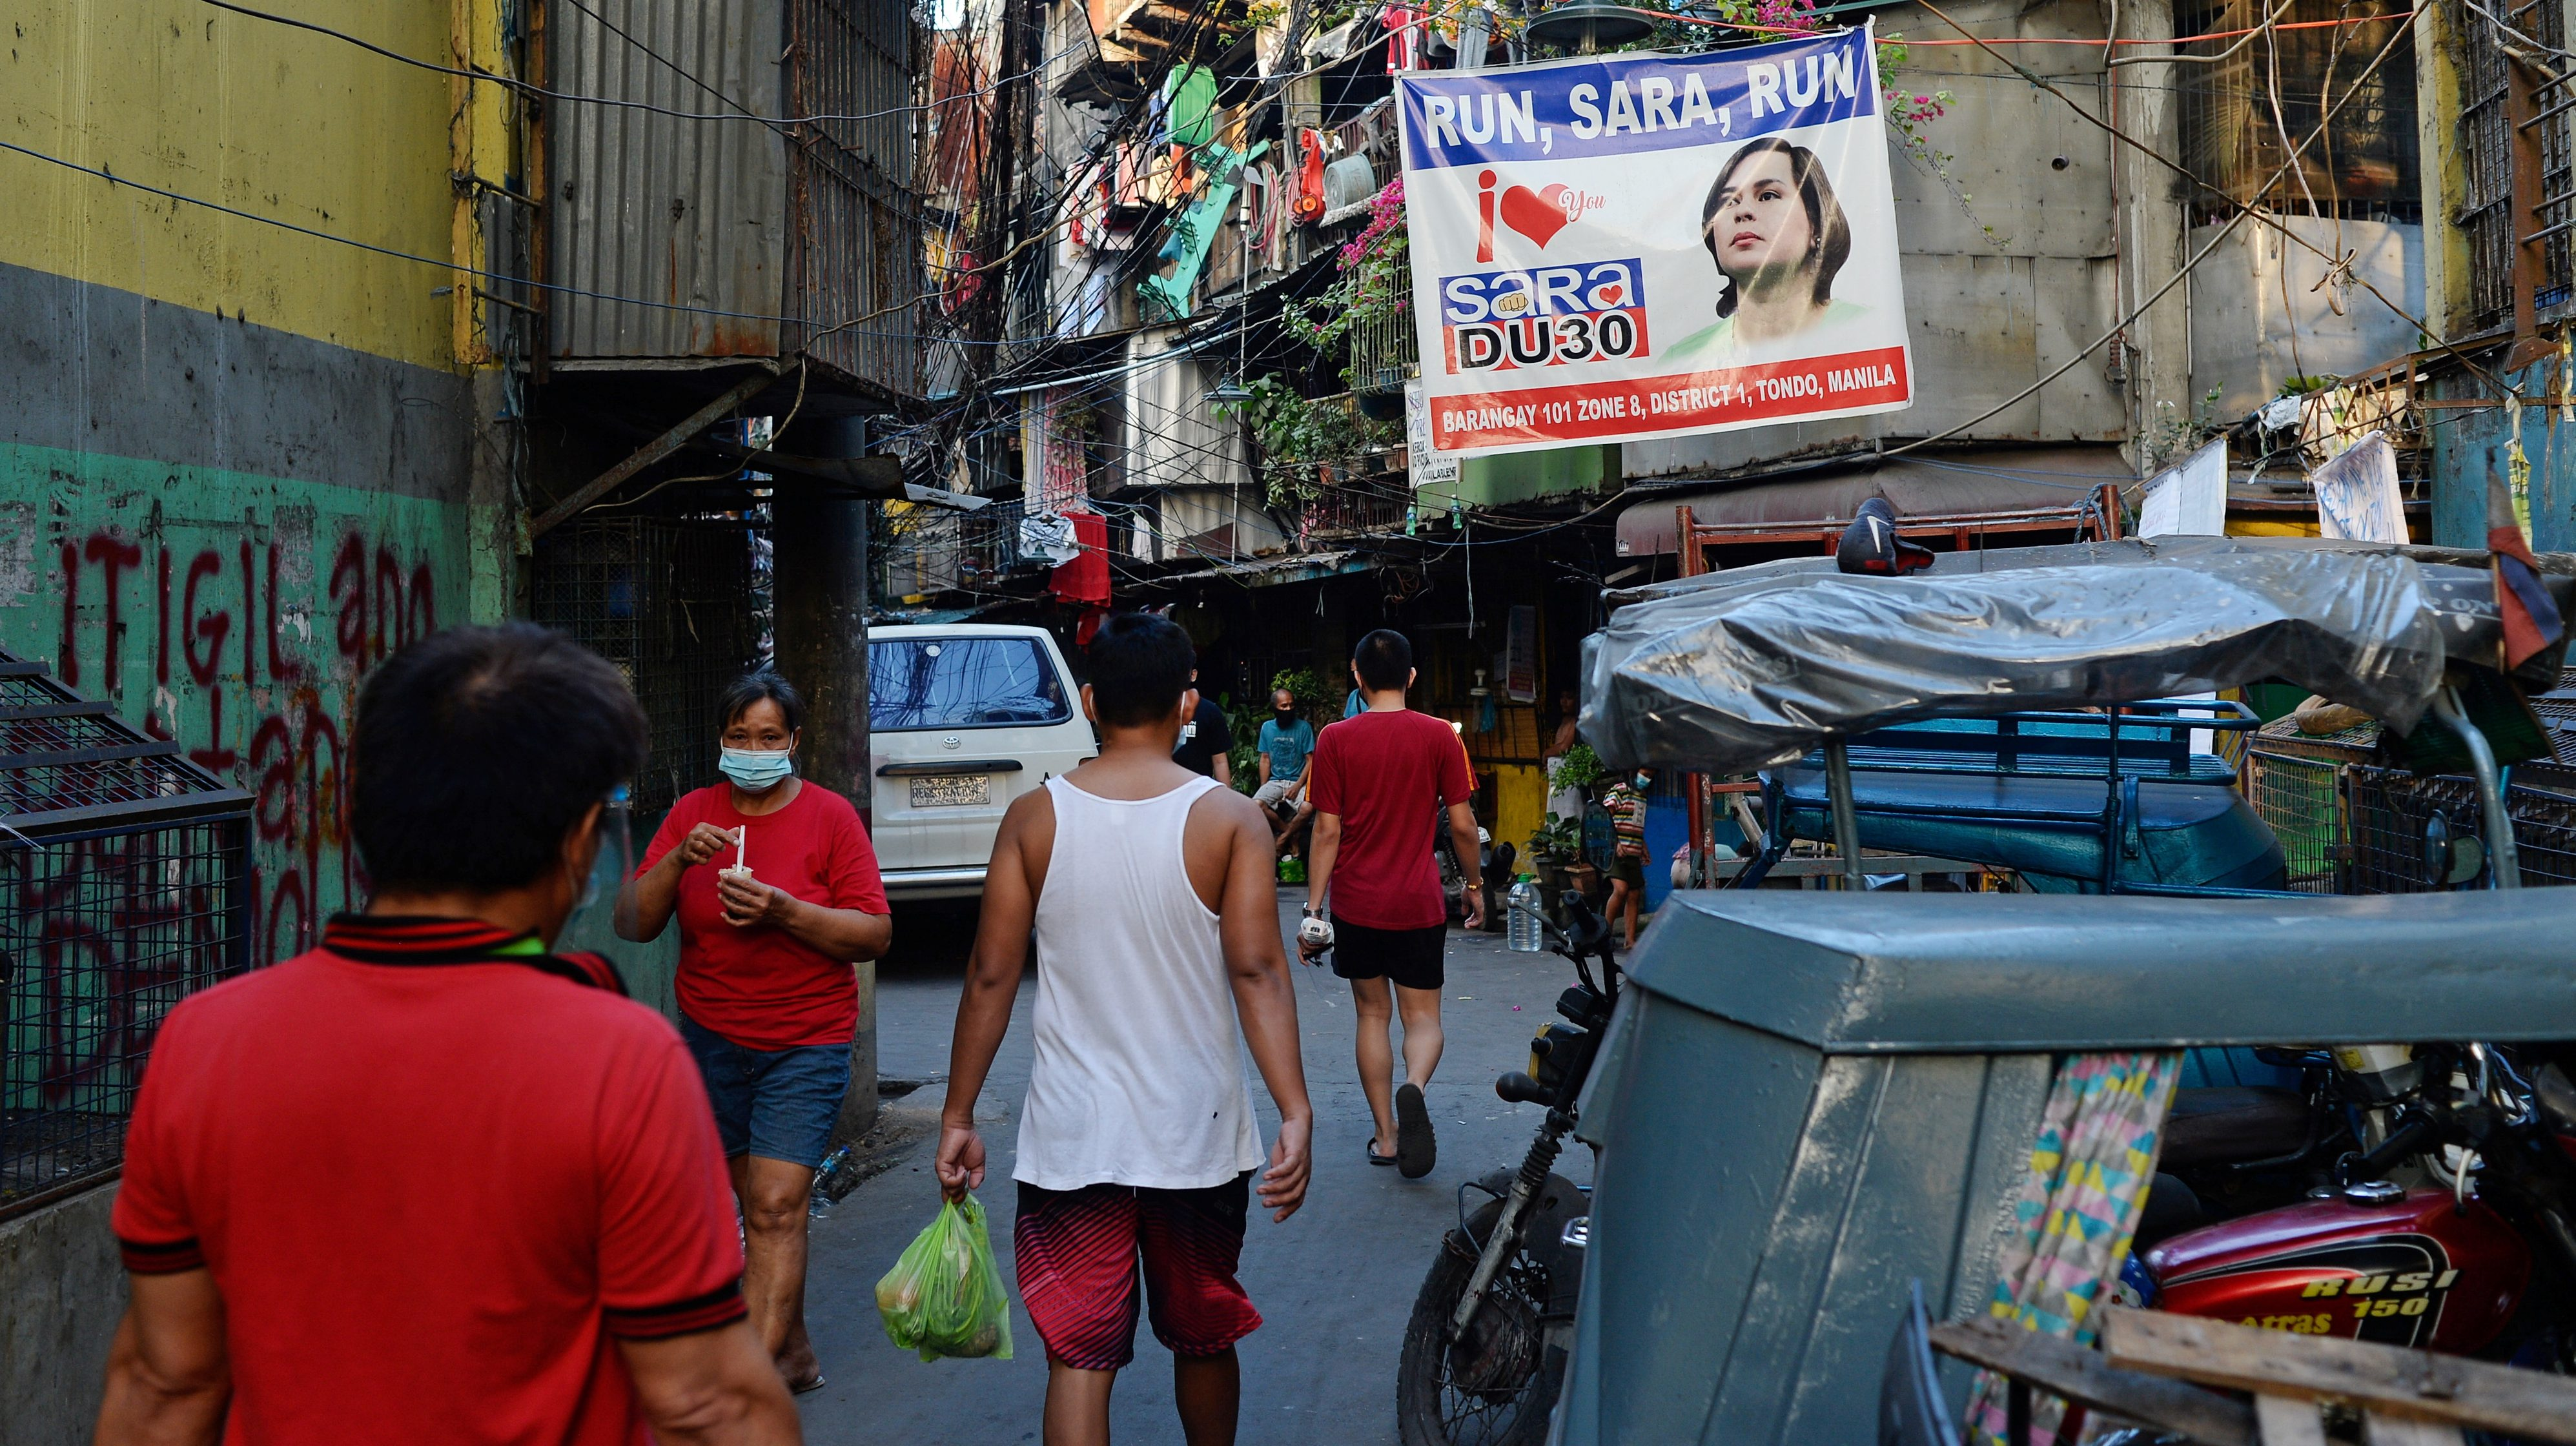 A banner showing support for Davao City Mayor Sara Duterte to run for president is seen in a community in Manila, Philippines, April 9, 2021. Picture taken April 9, 2021.